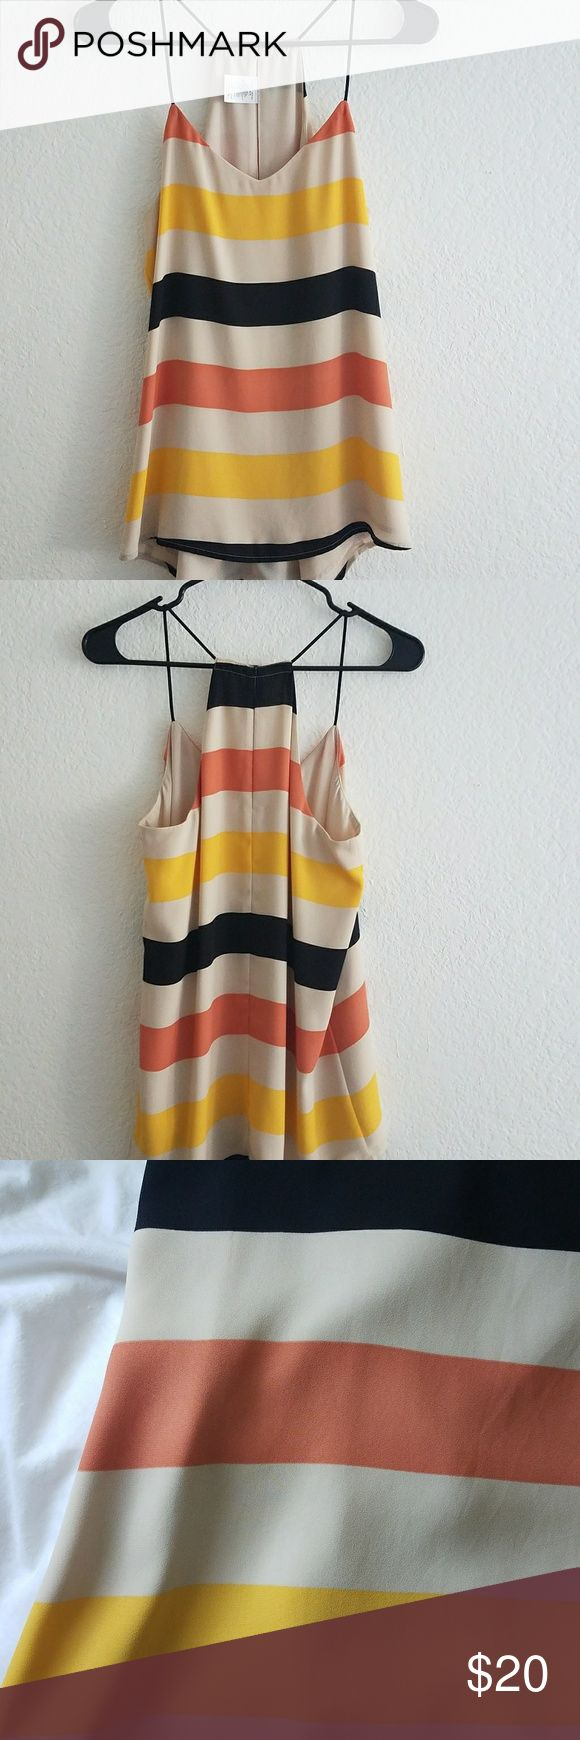 Express Barcelona Cami Reversible cami with orange, yellow, and black wide stripes. The background color is a neutral as well as the reversible side. Size M. Express Tops Tank Tops